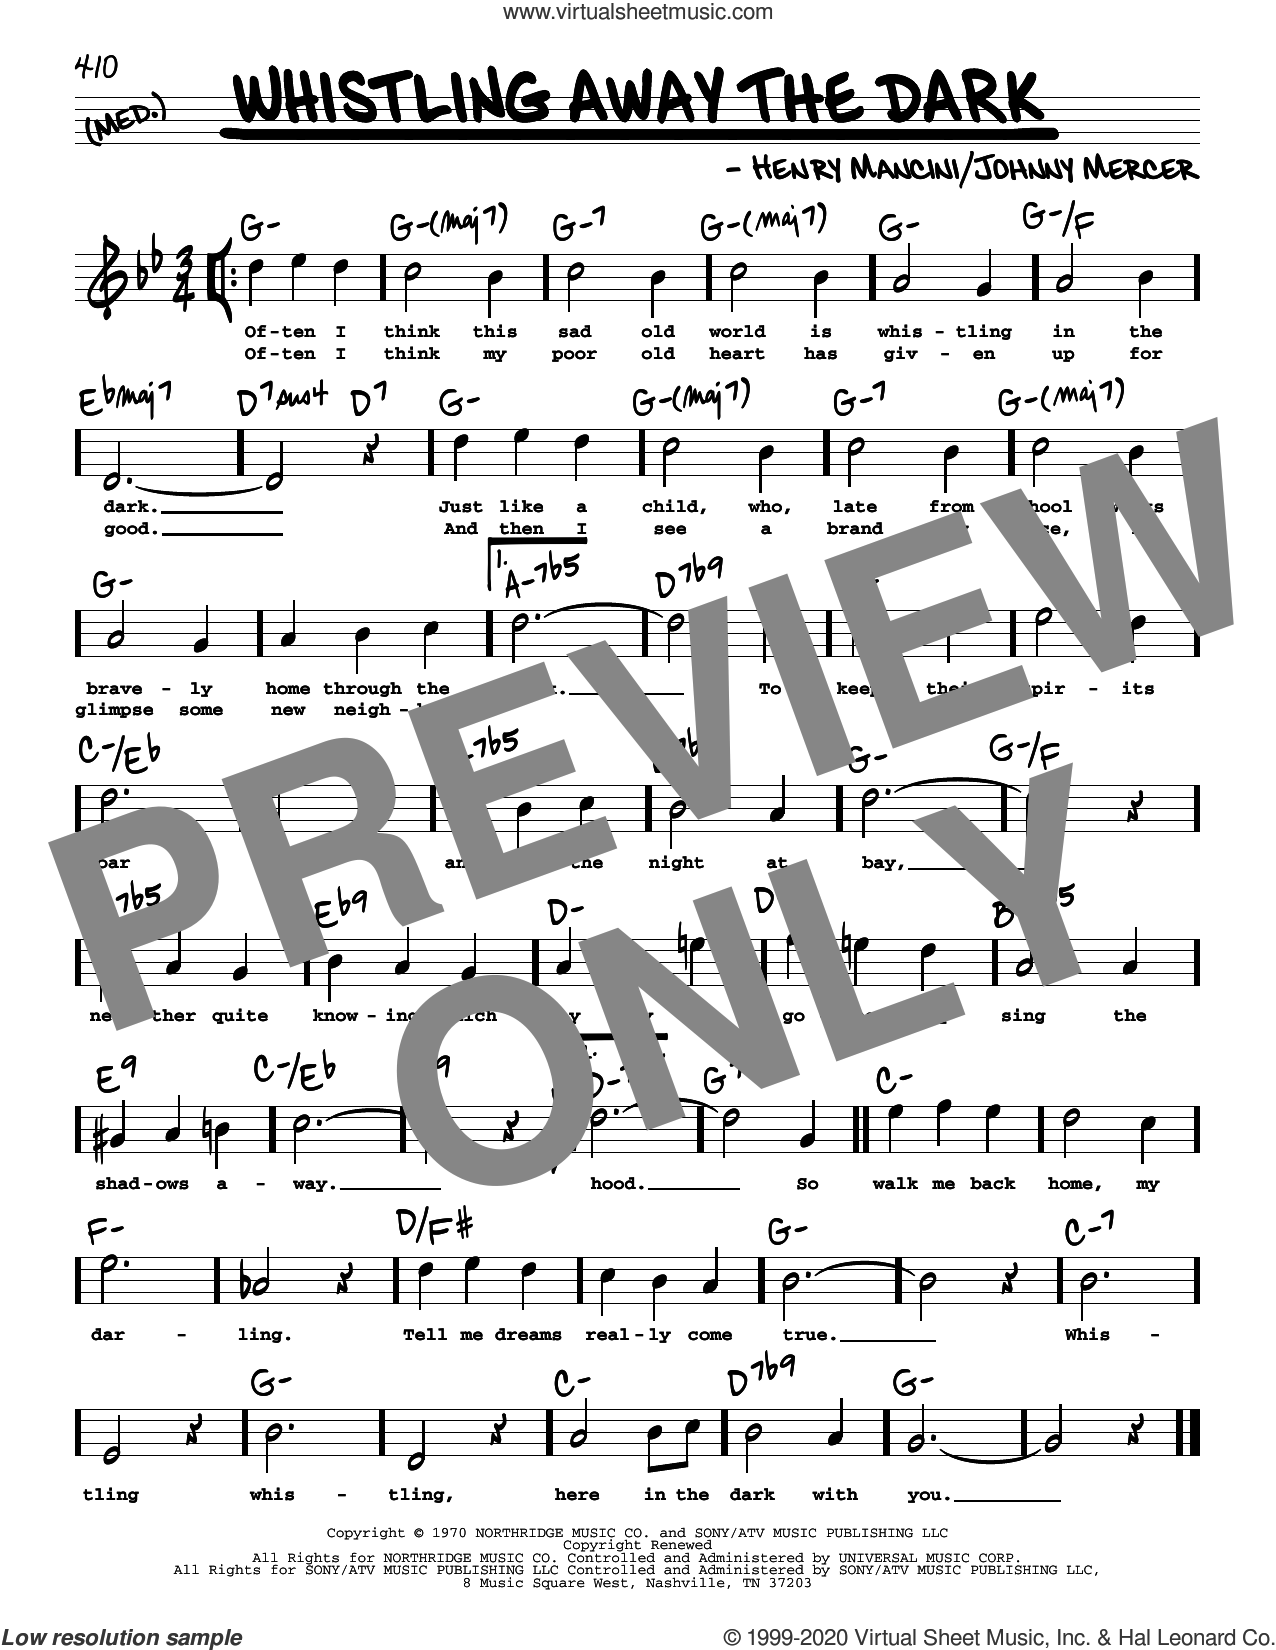 Whistling Away The Dark (High Voice) sheet music for voice and other instruments (high voice) by Johnny Mercer and Henry Mancini, intermediate skill level